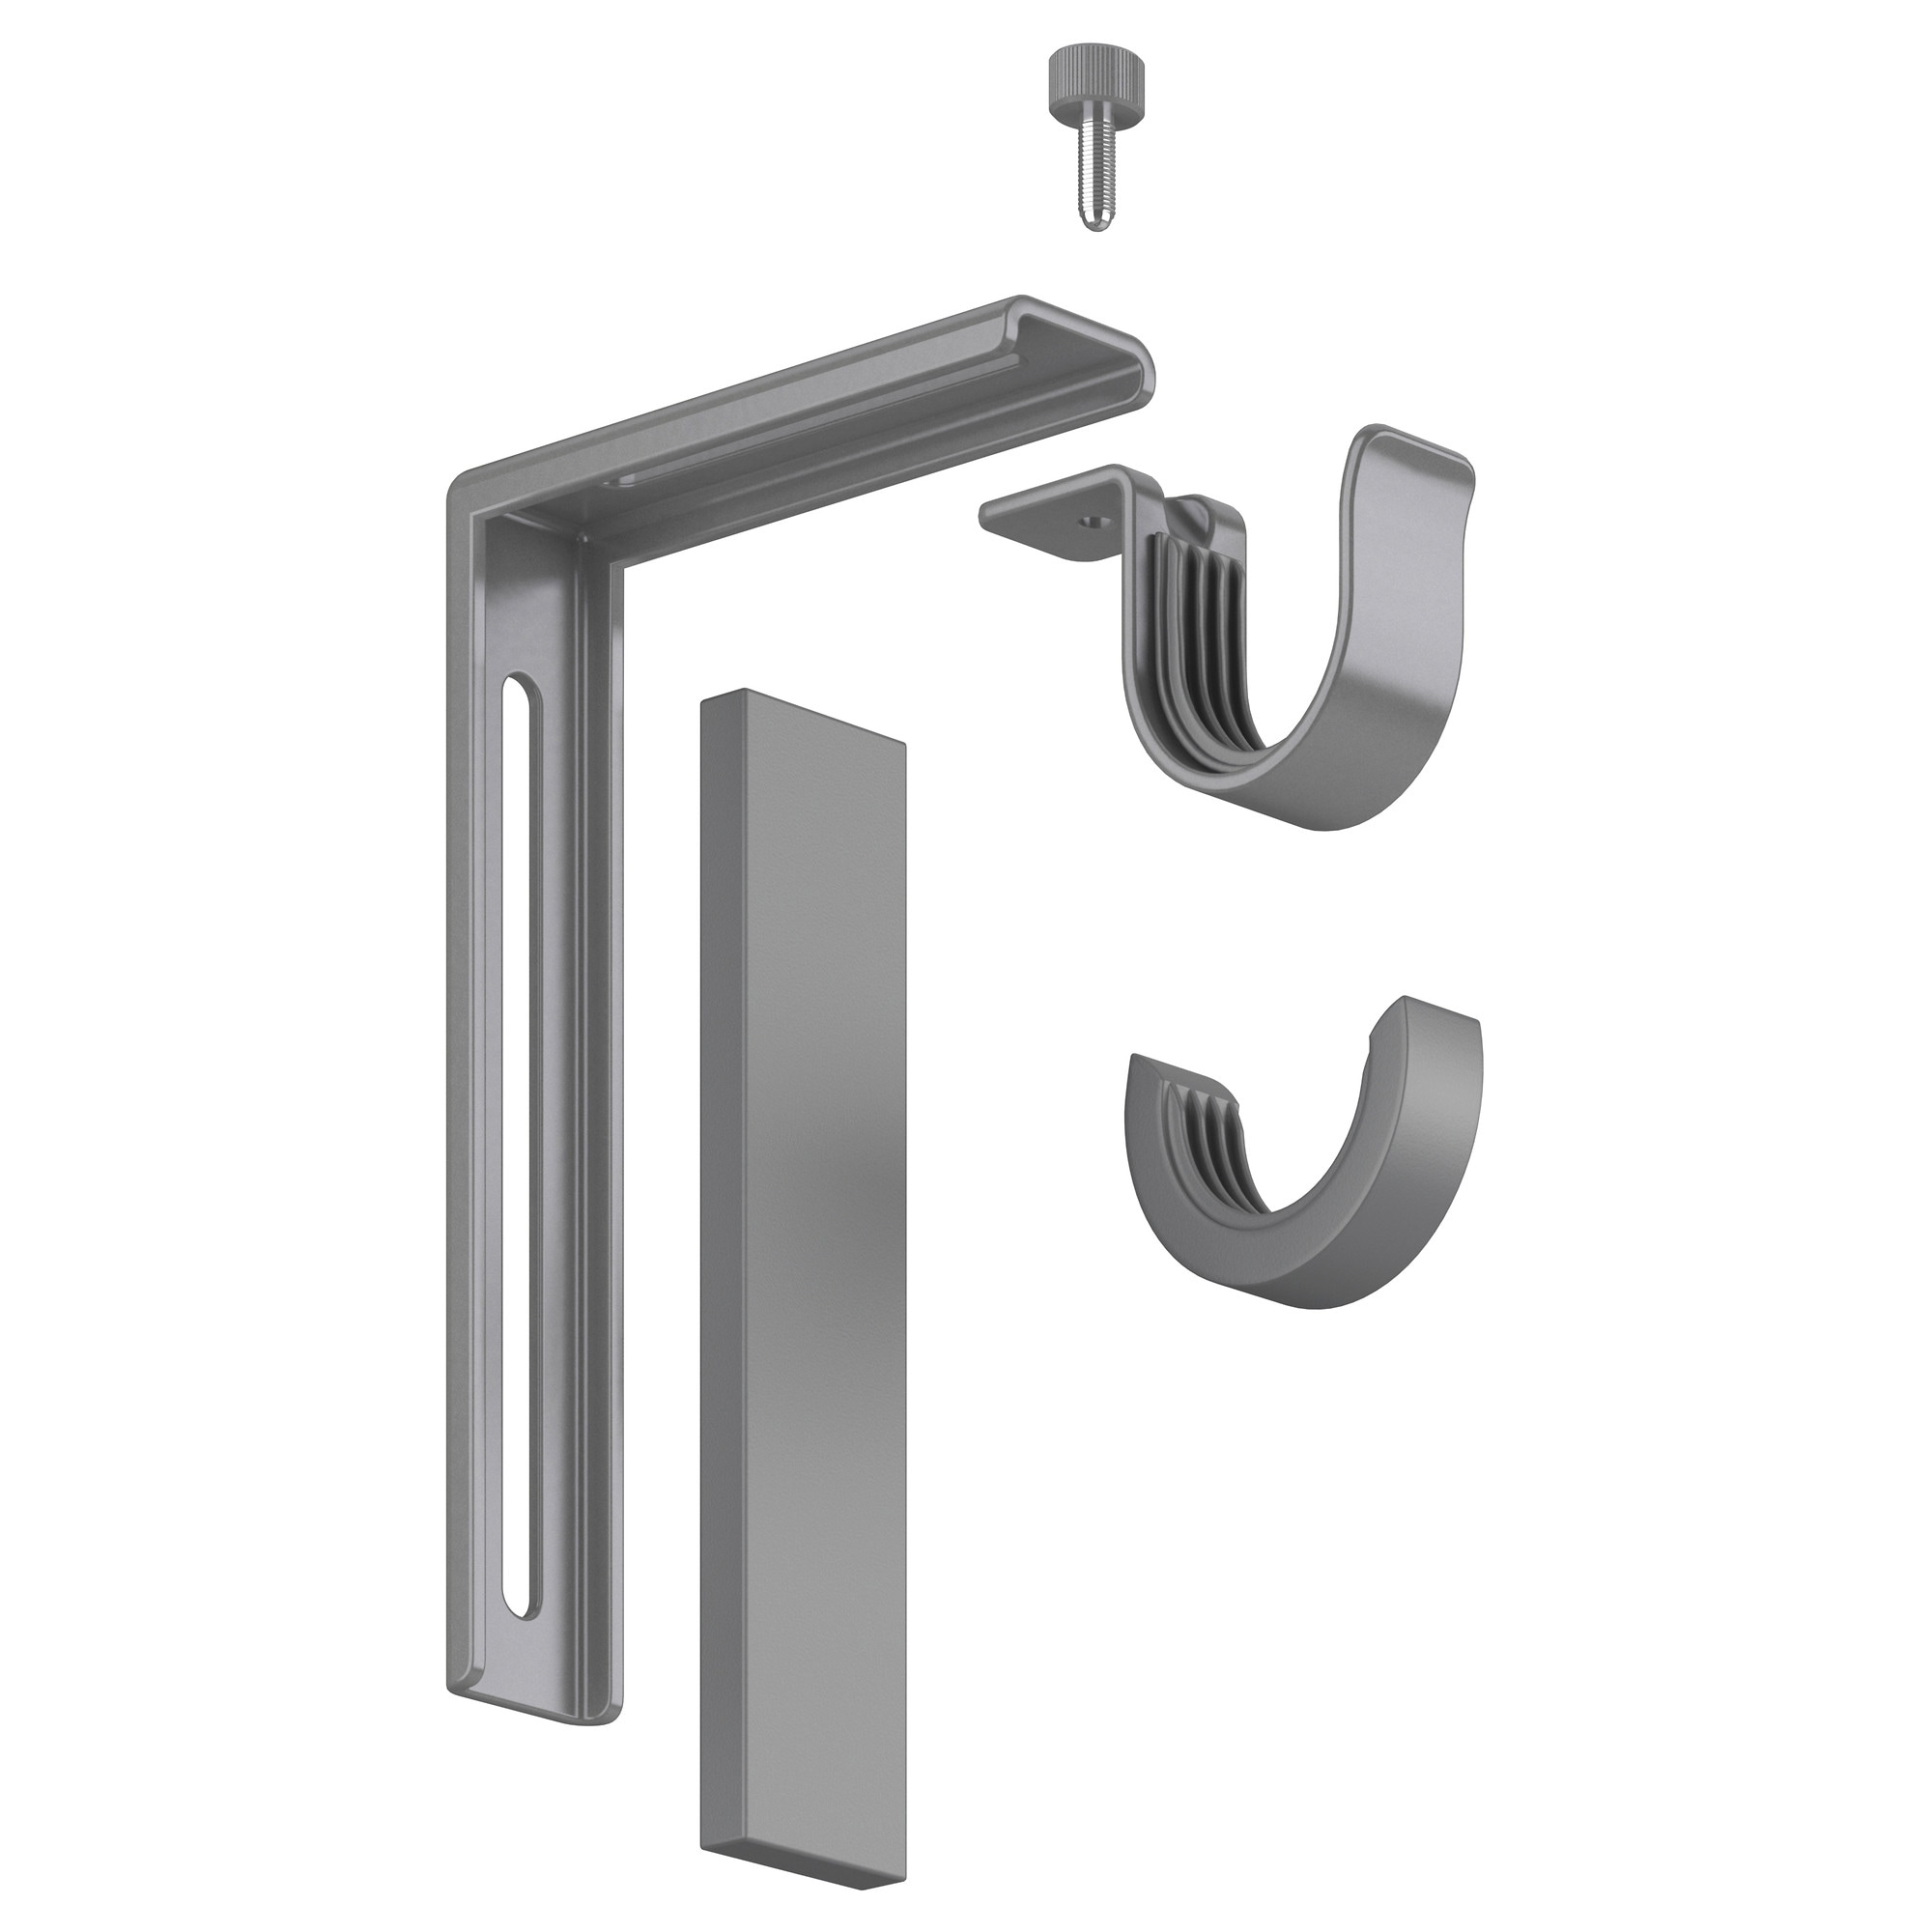 Ceiling mounted curtain rod brackets - Ceiling Mounted Curtain Rod Brackets 46